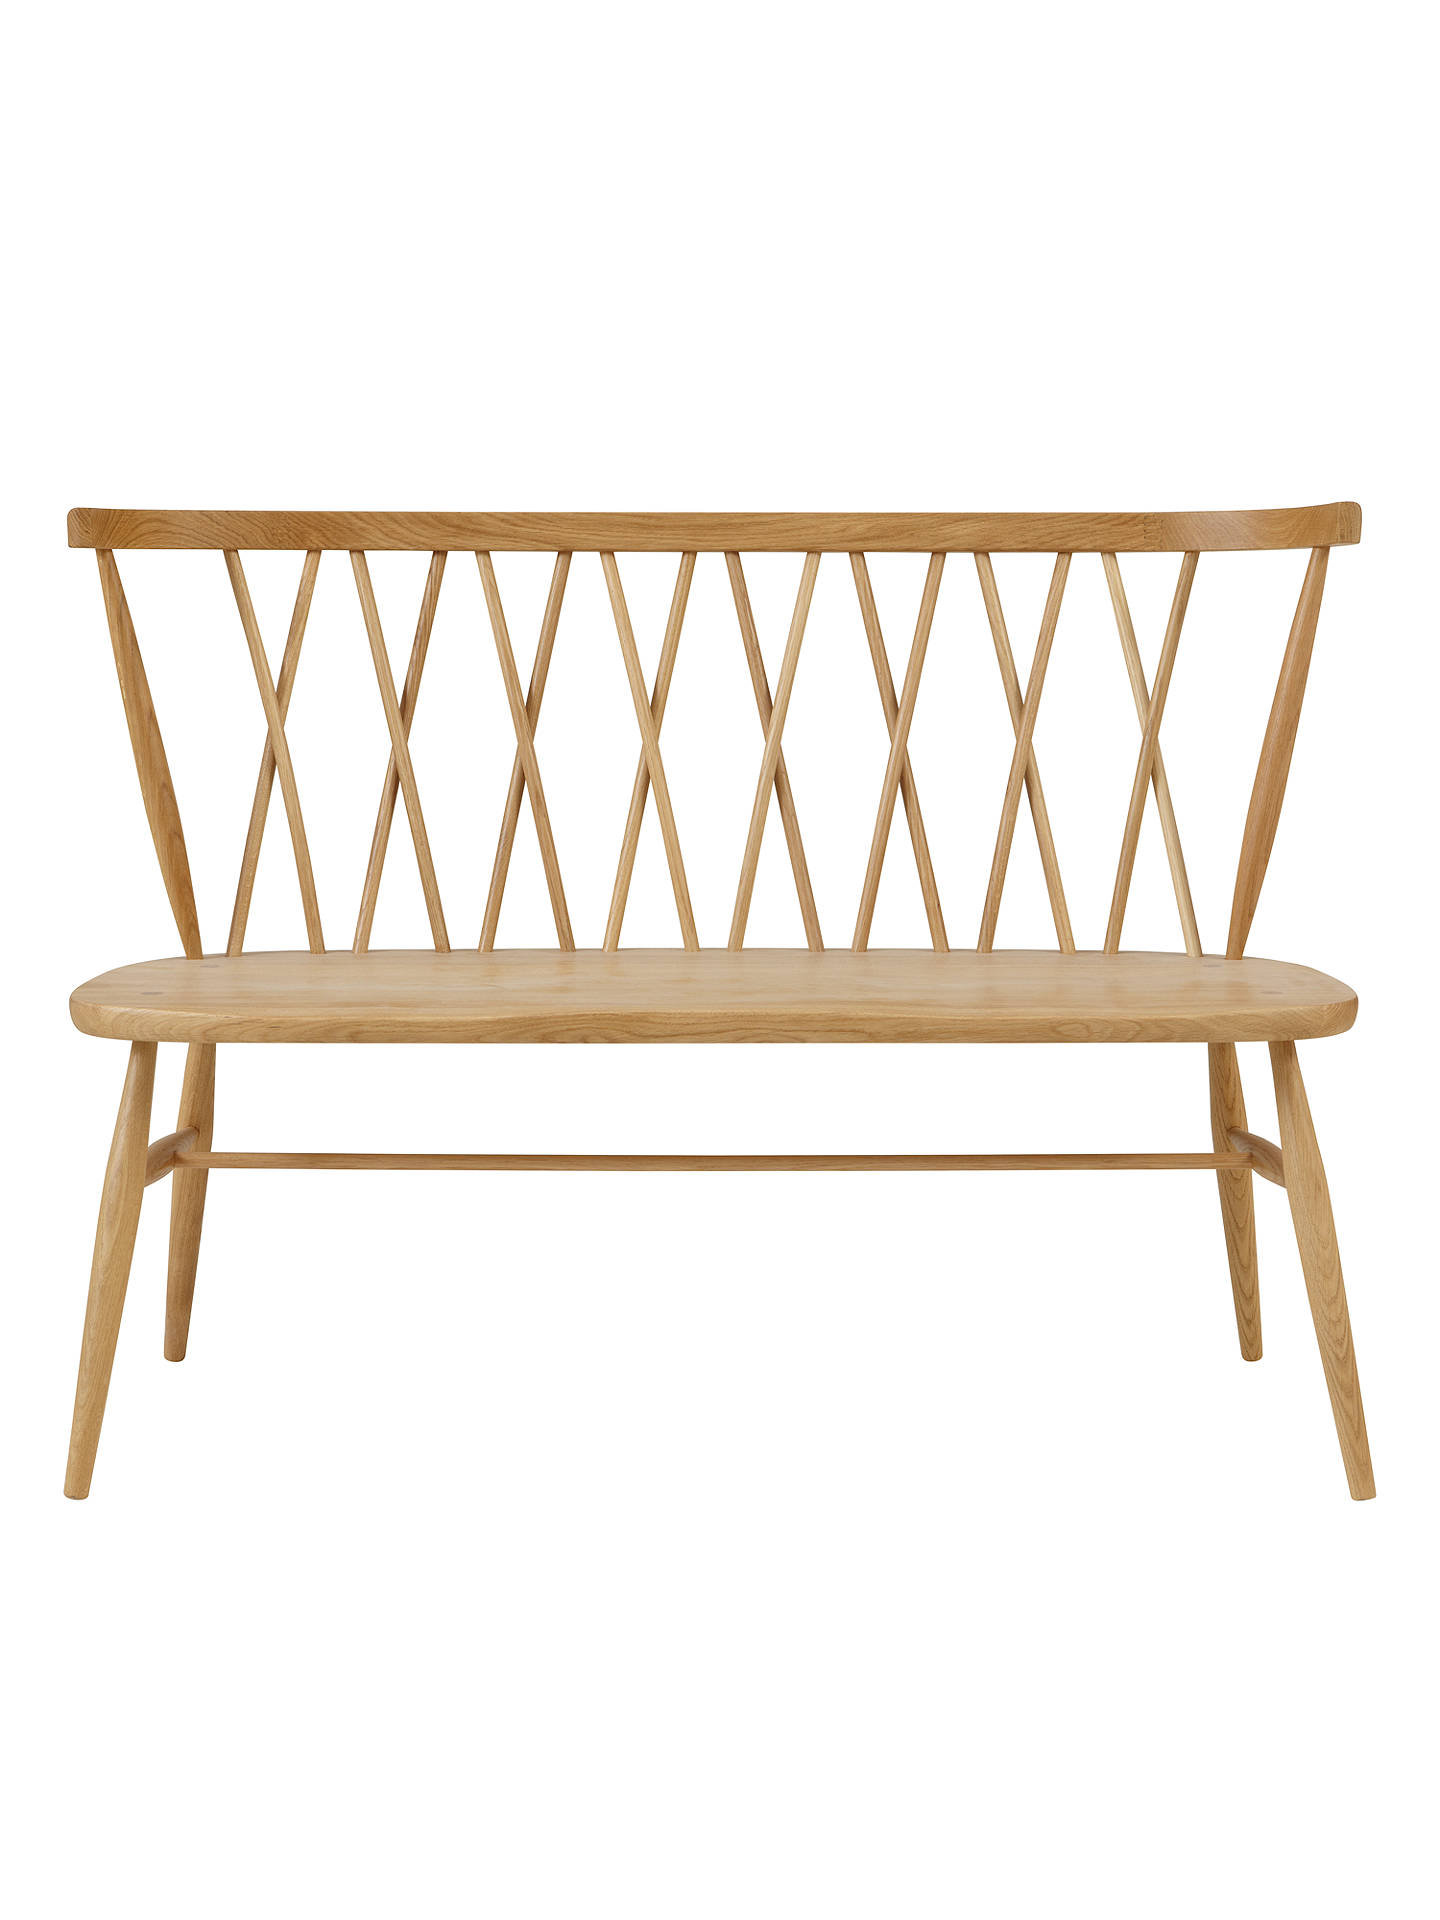 Terrific Ercol For John Lewis Chiltern 3 Seater Dining Bench Light Alphanode Cool Chair Designs And Ideas Alphanodeonline